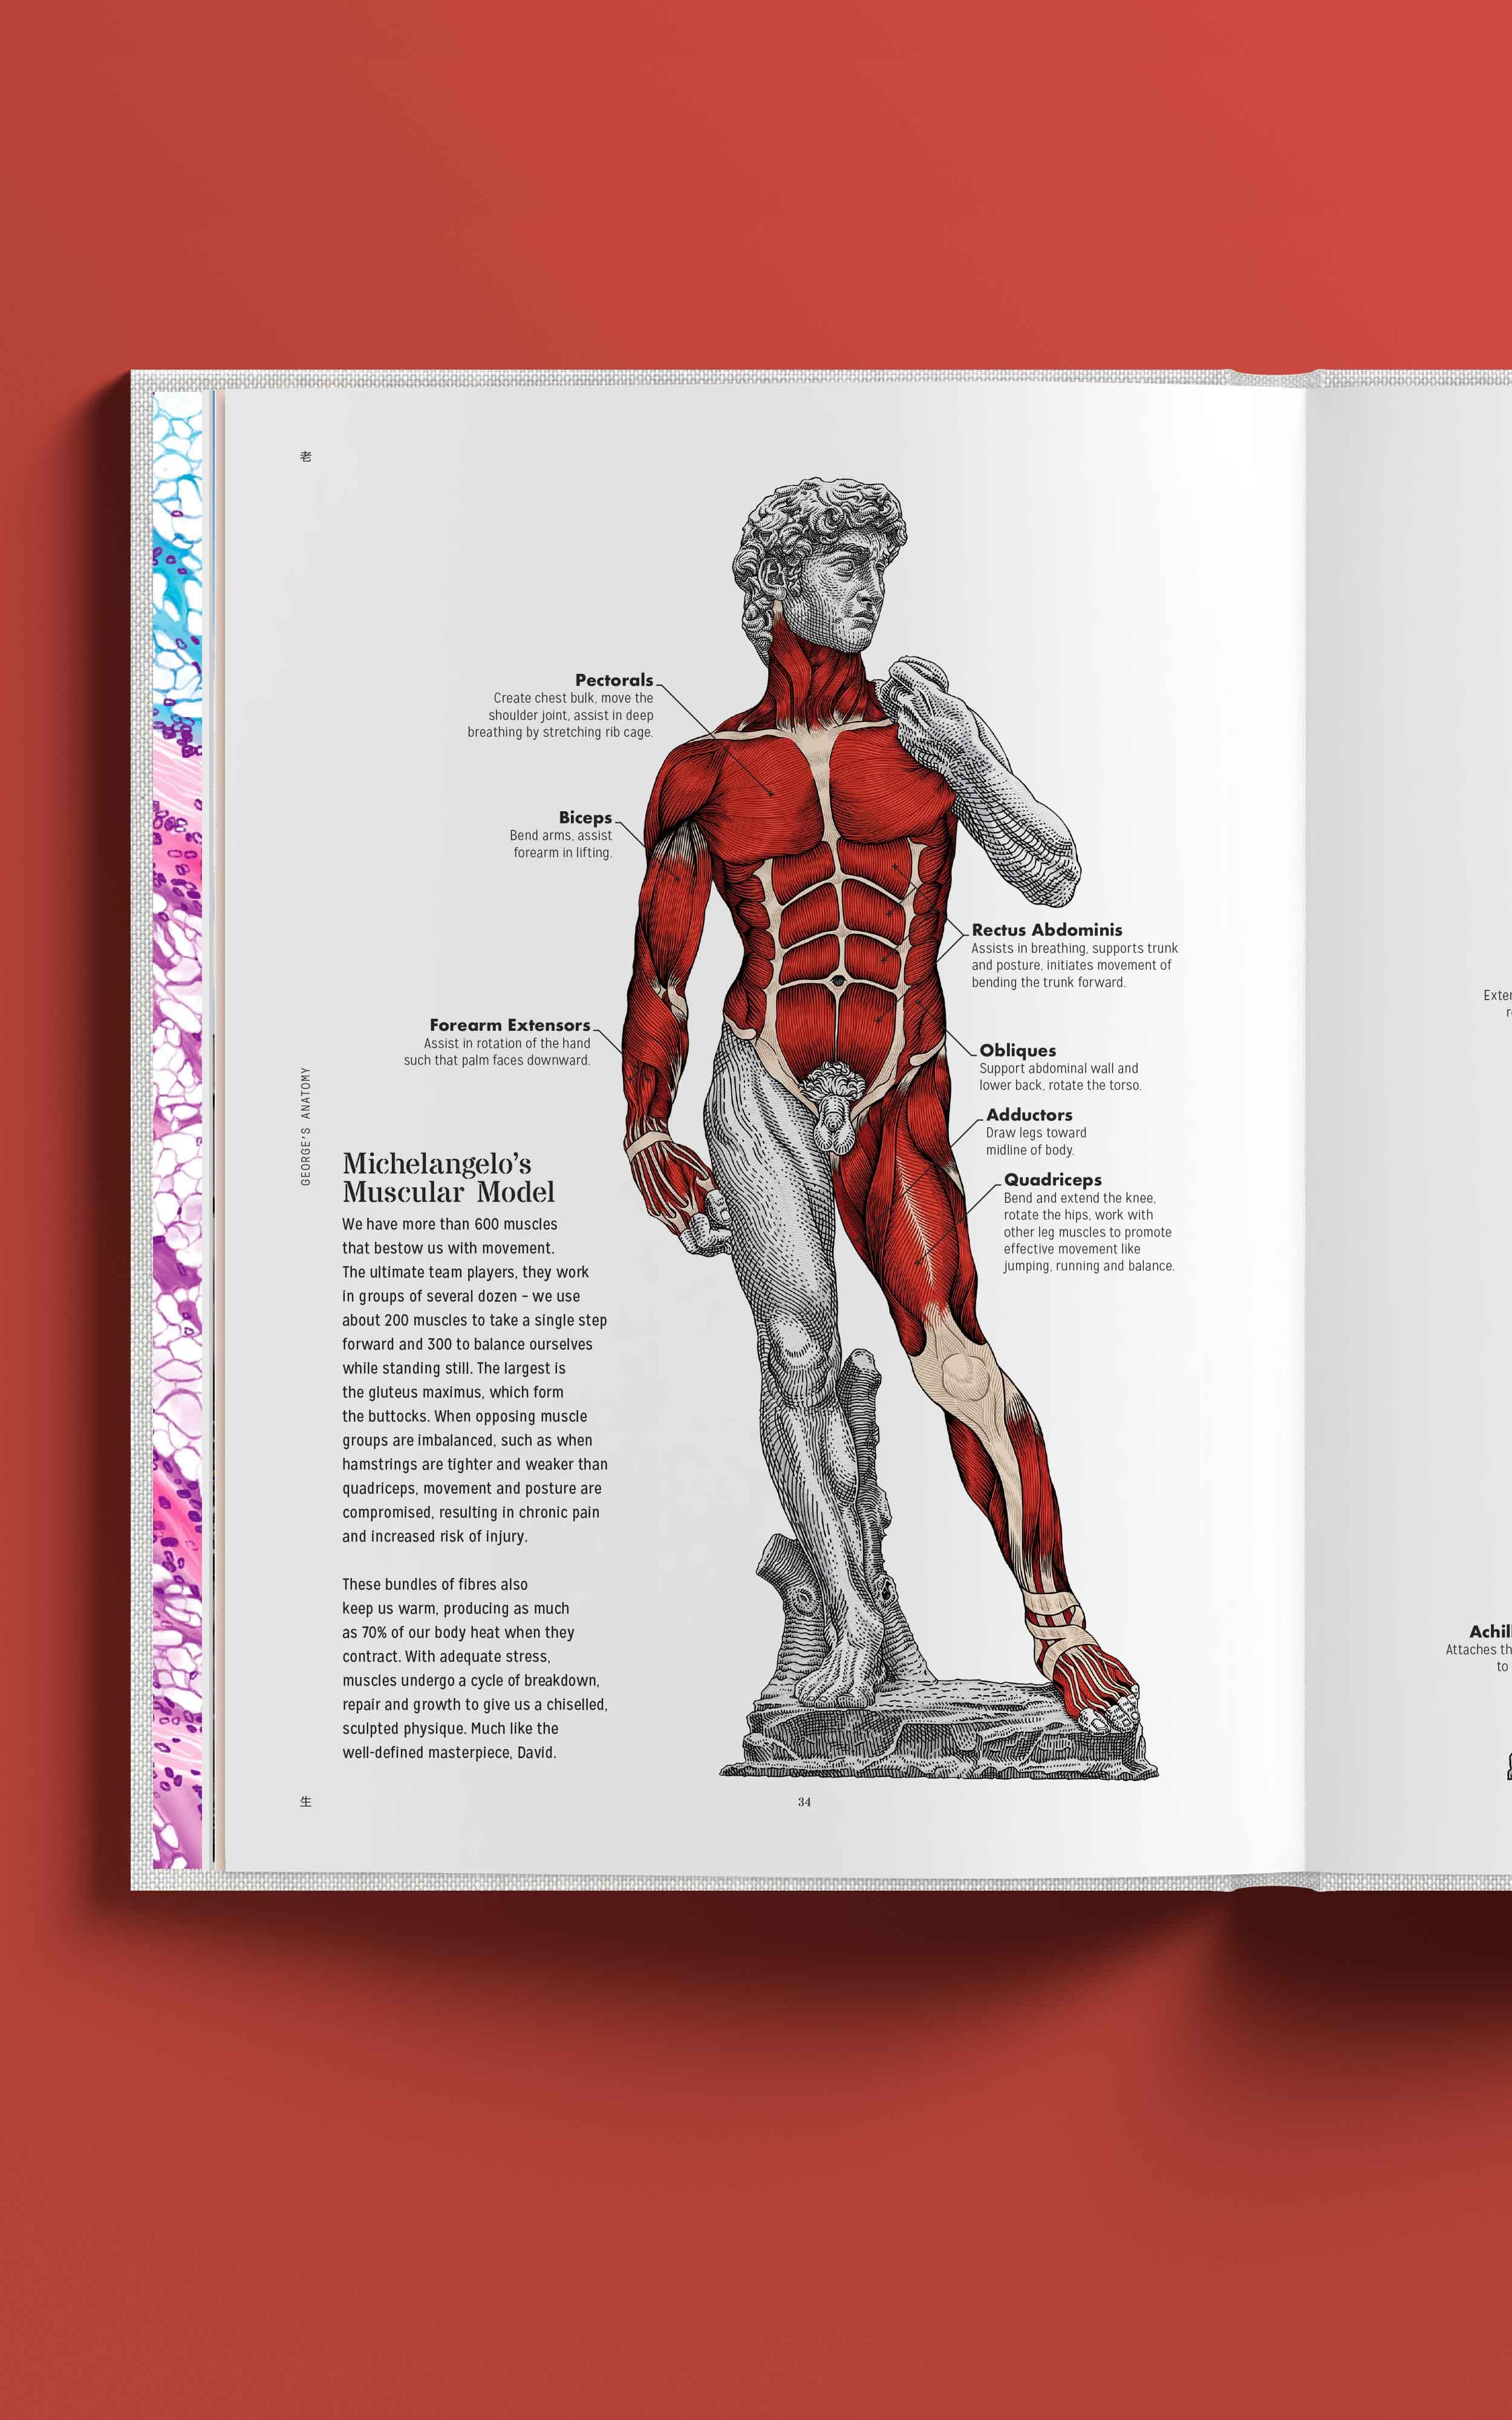 George's Anatomy – Lien Foundation's body of work & philanthropic pursuits through the human anatomy, Annual Report '16-17